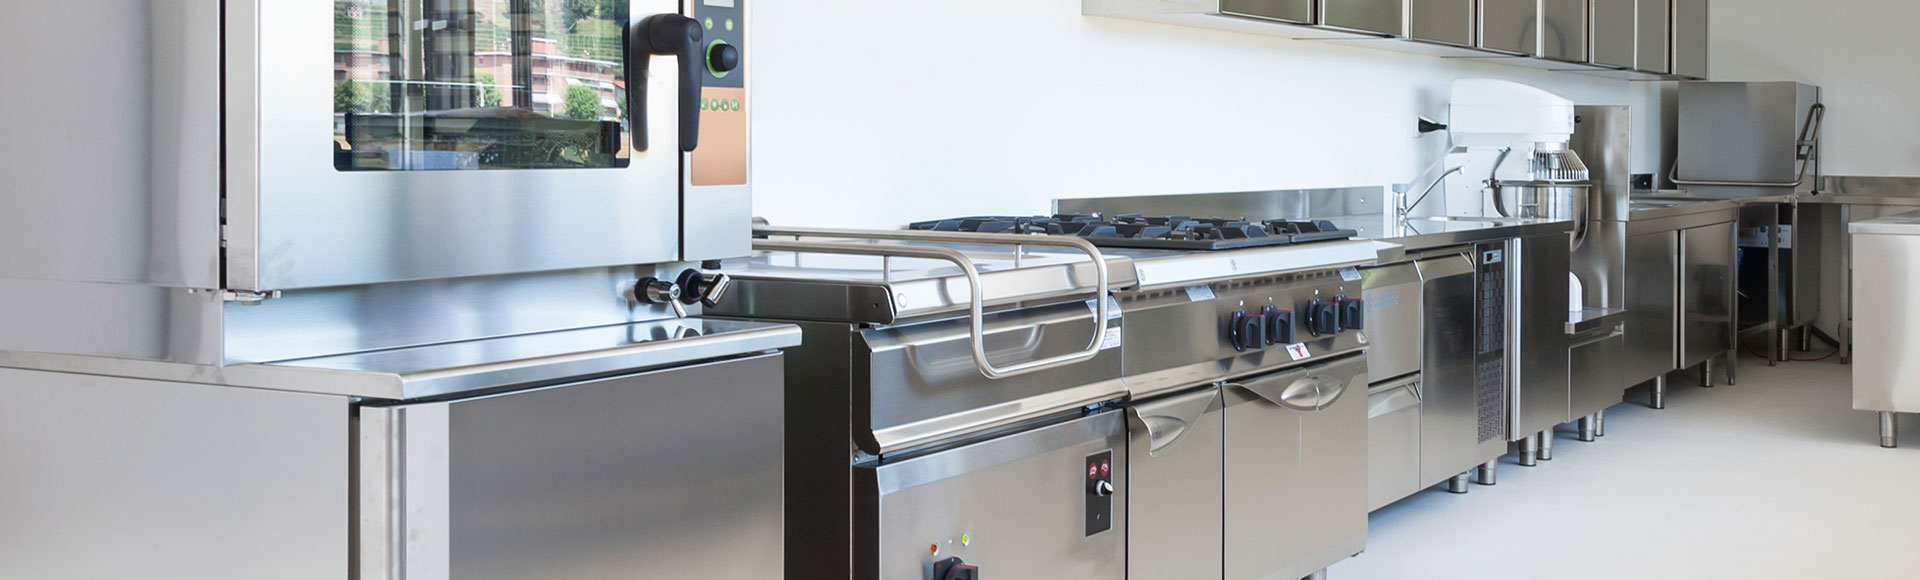 Choosing the Best Commercial Bakery Equipment